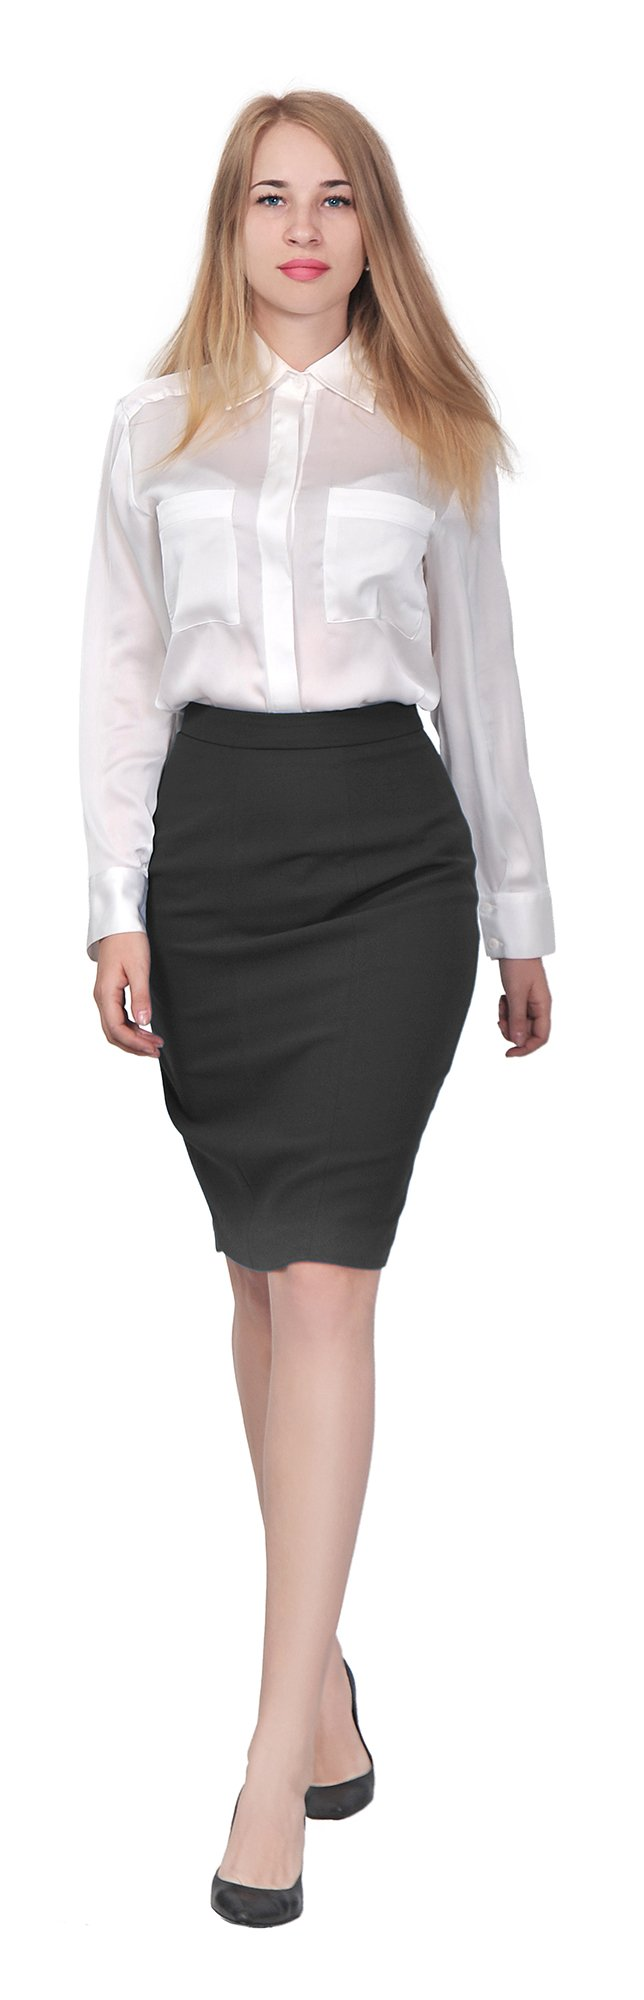 Marycrafts Women's Lined Pencil Skirt 4 Work Business Office 2 black by Marycrafts (Image #4)